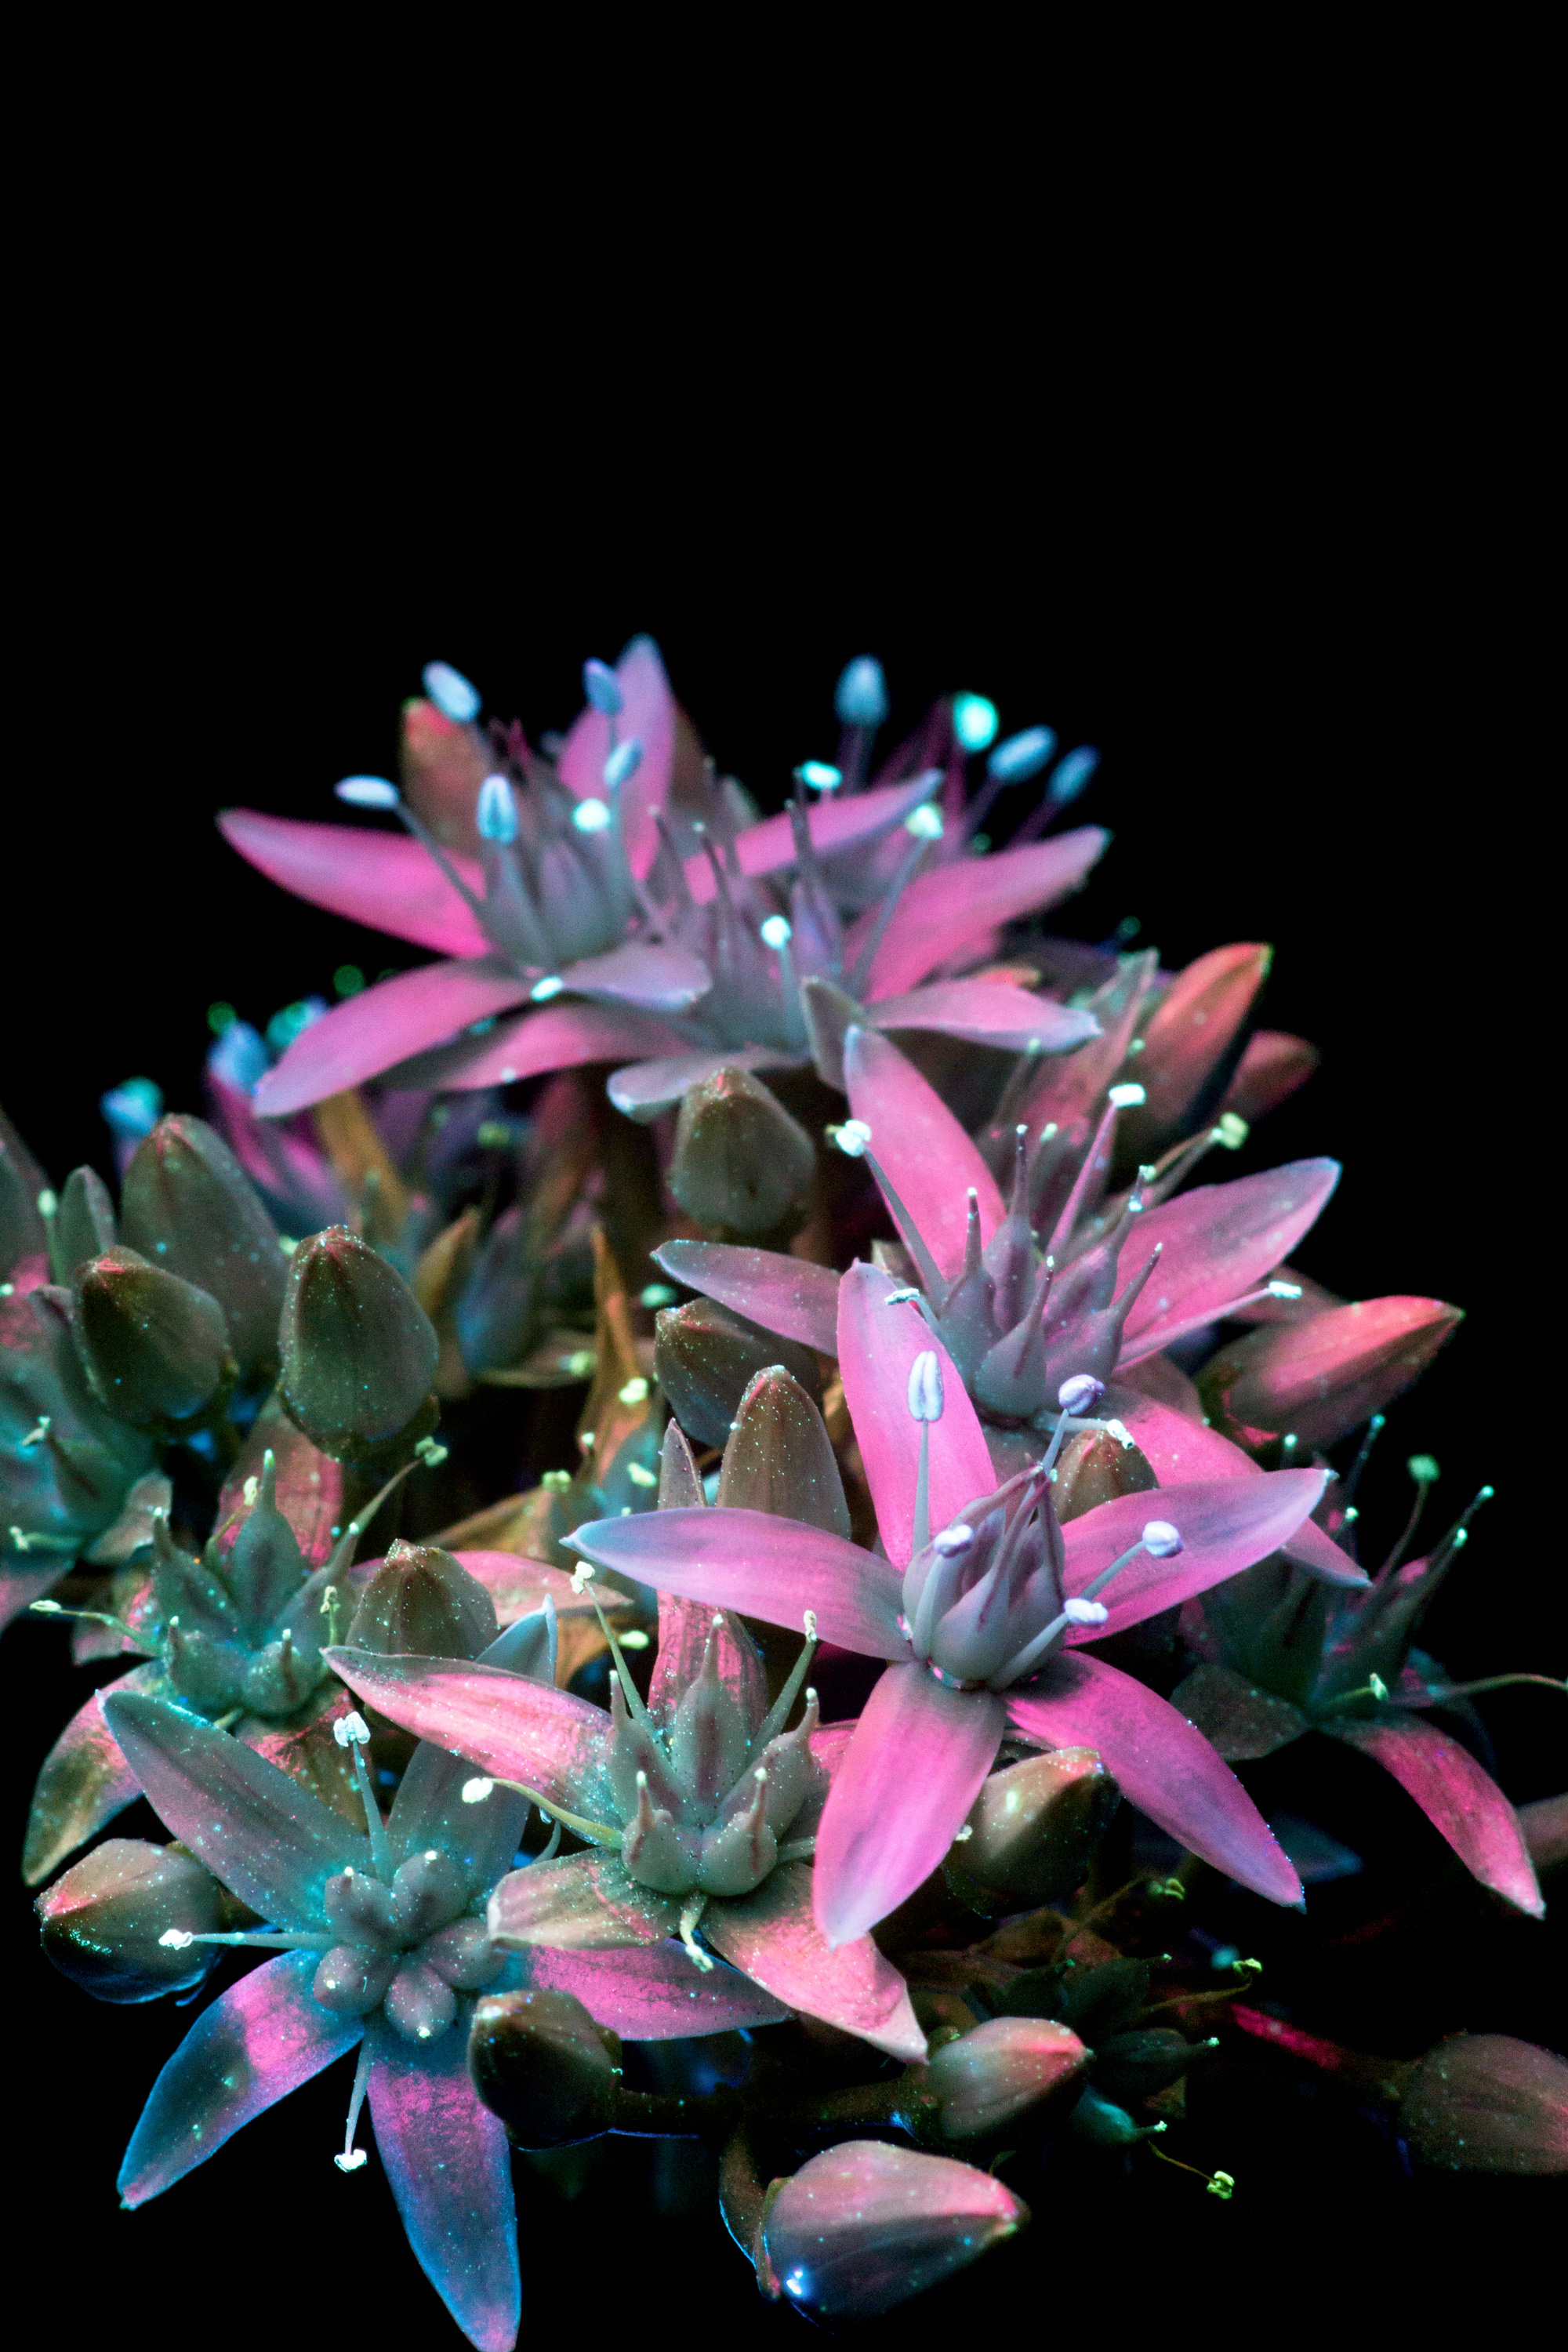 New-Succulent-Flower-5